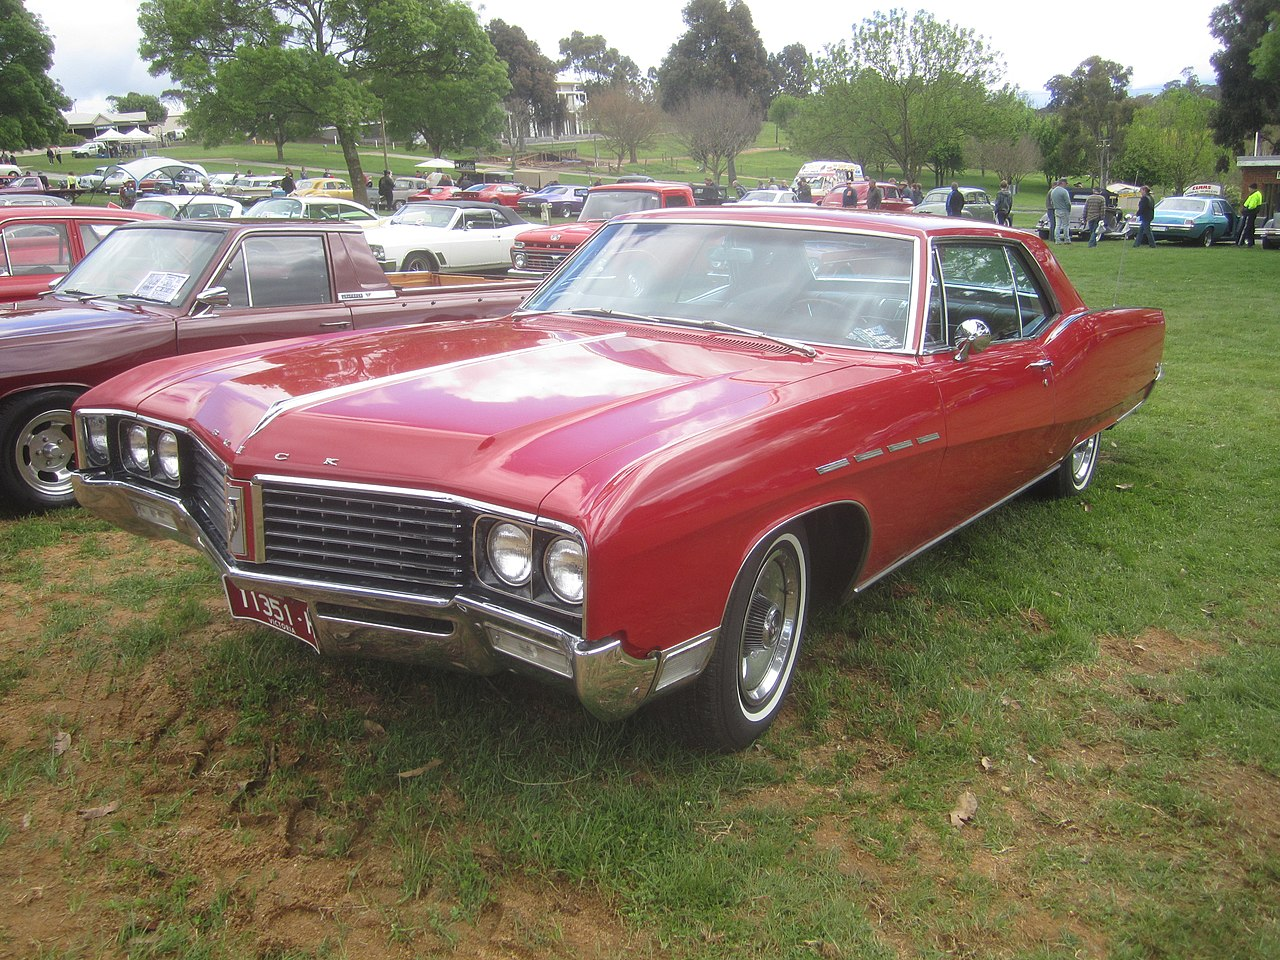 Buick Centurion together with 1966 Buick Electra 225 4 Door Sedan also File 1967 buick electra 225 hardtop as well Buick Lesabre together with 10236 Buick Estate 1976 3. on 1973 buick electra